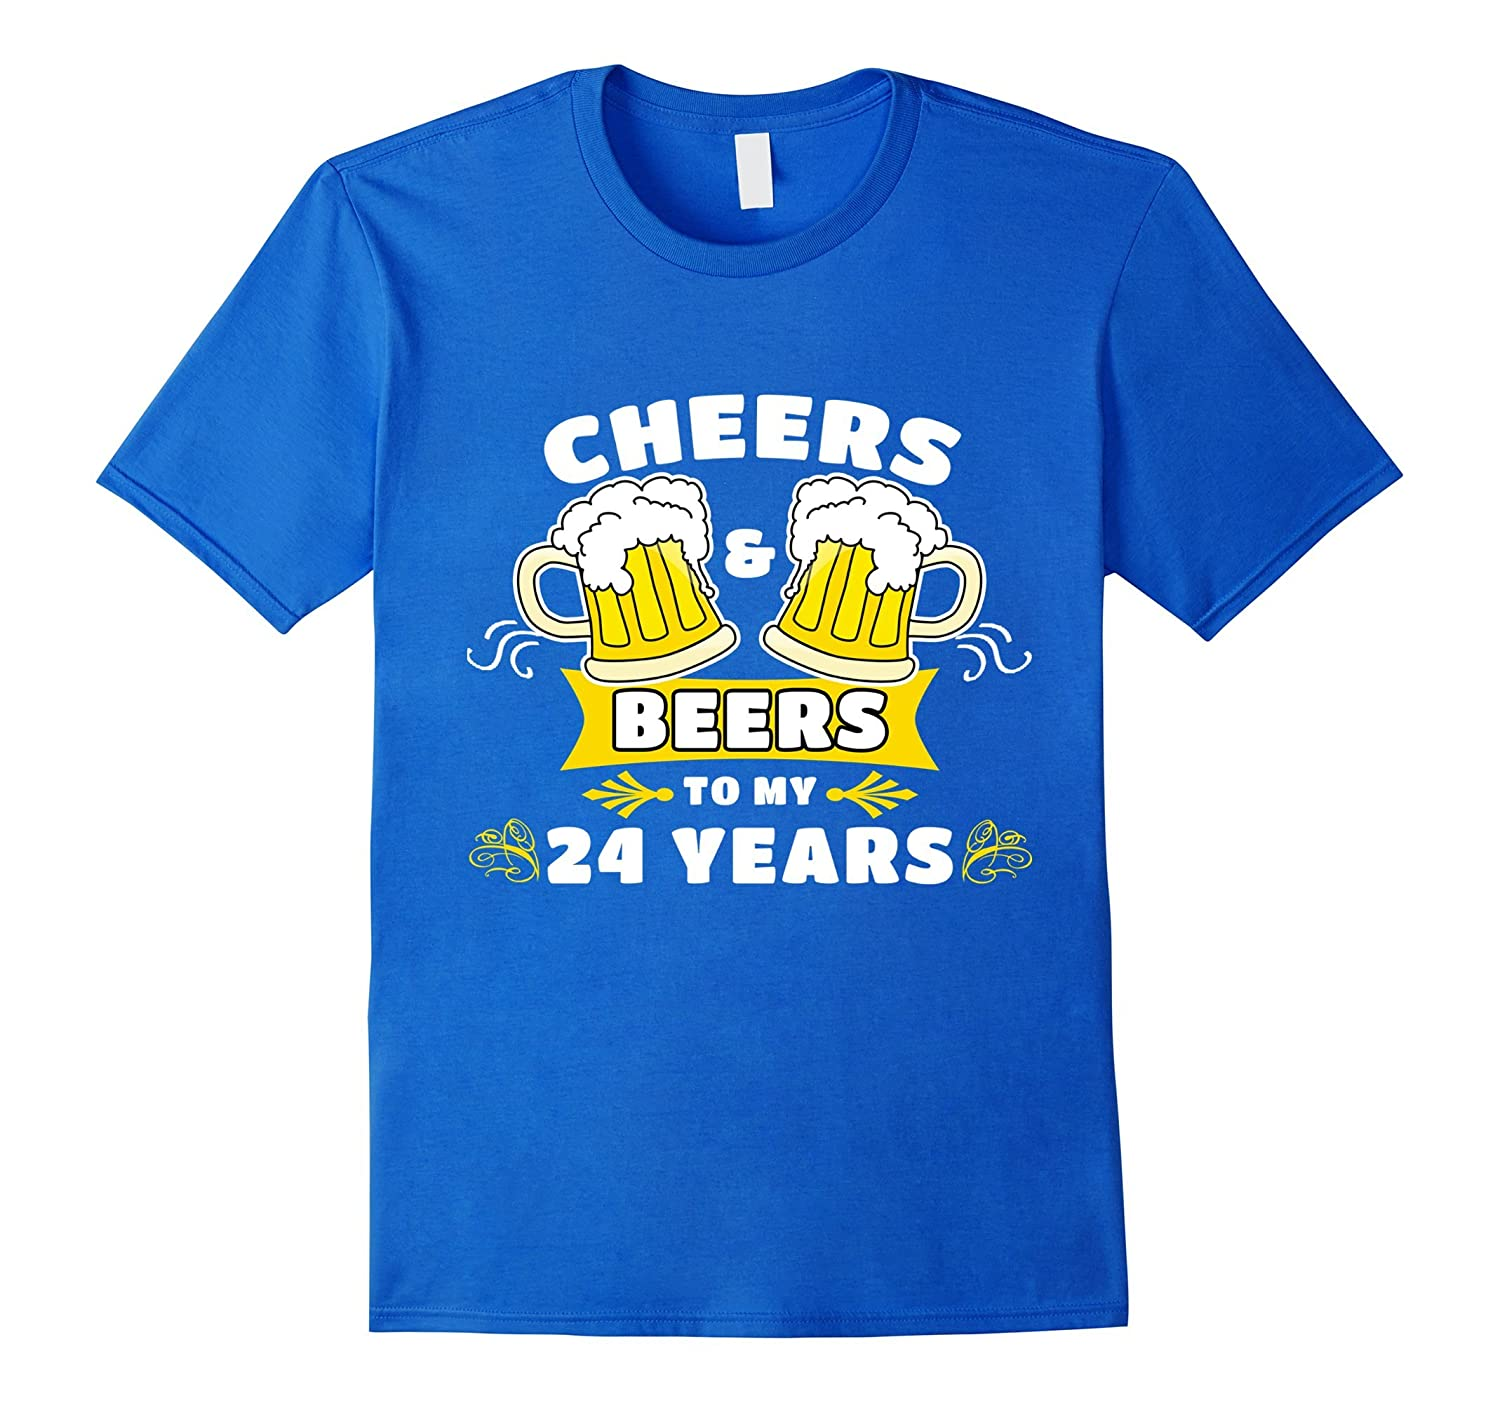 Cheers And Beers To My 24 Years T-Shirt 24th Birthday Gift-Art